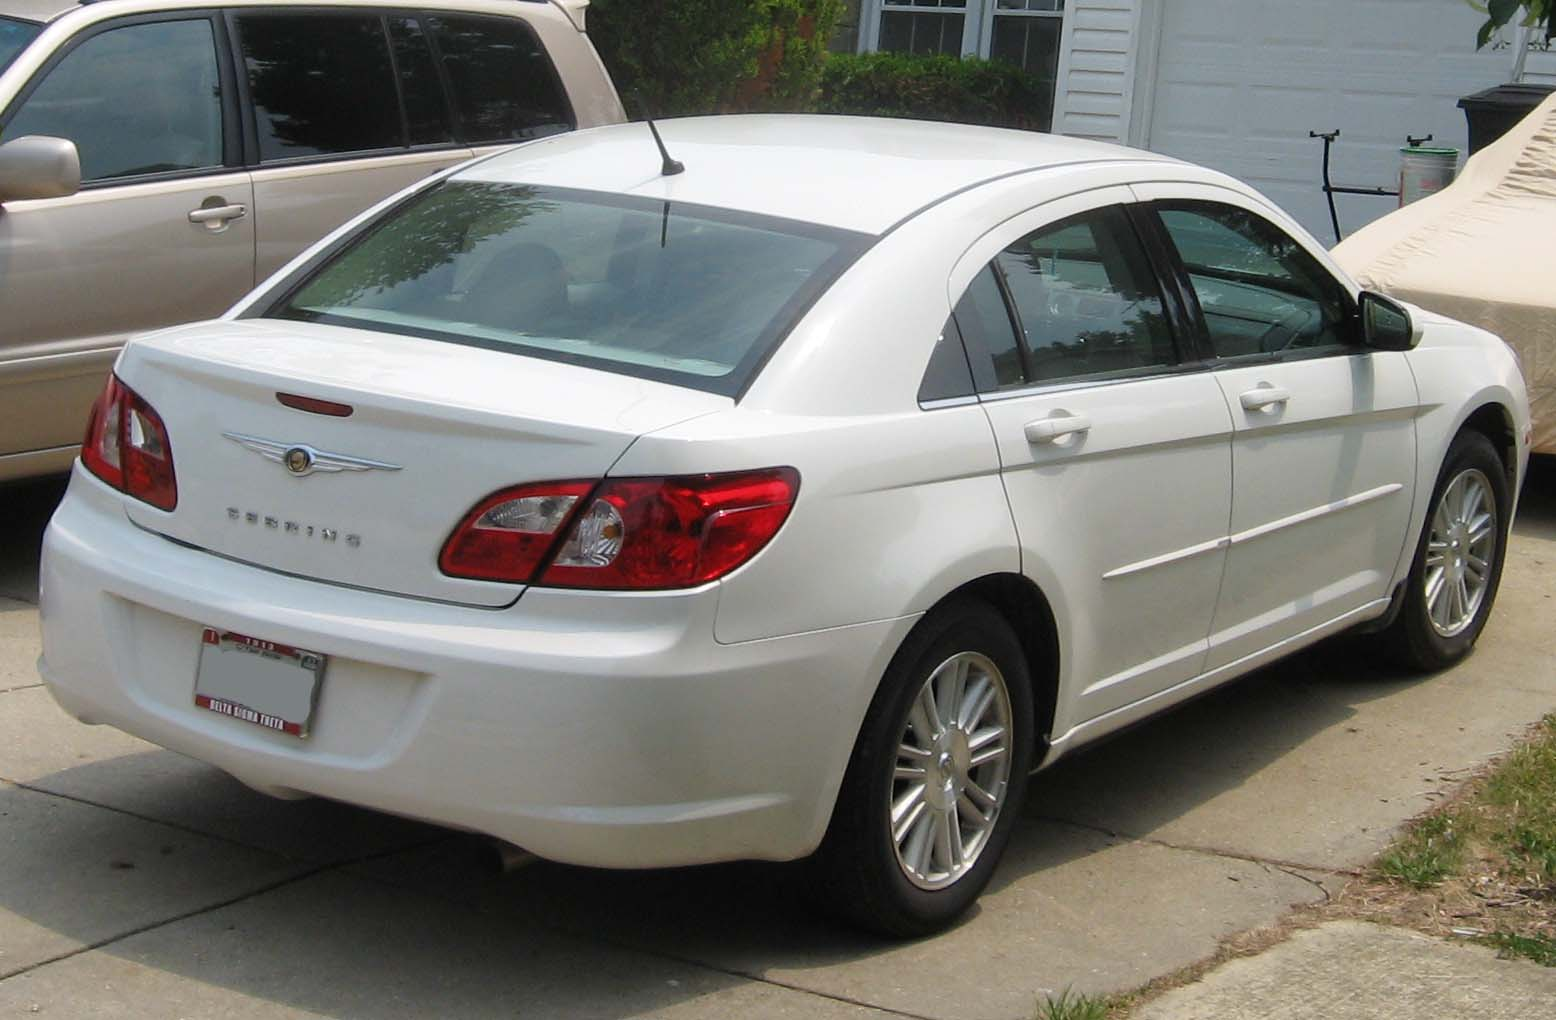 Chrysler Sebring #18